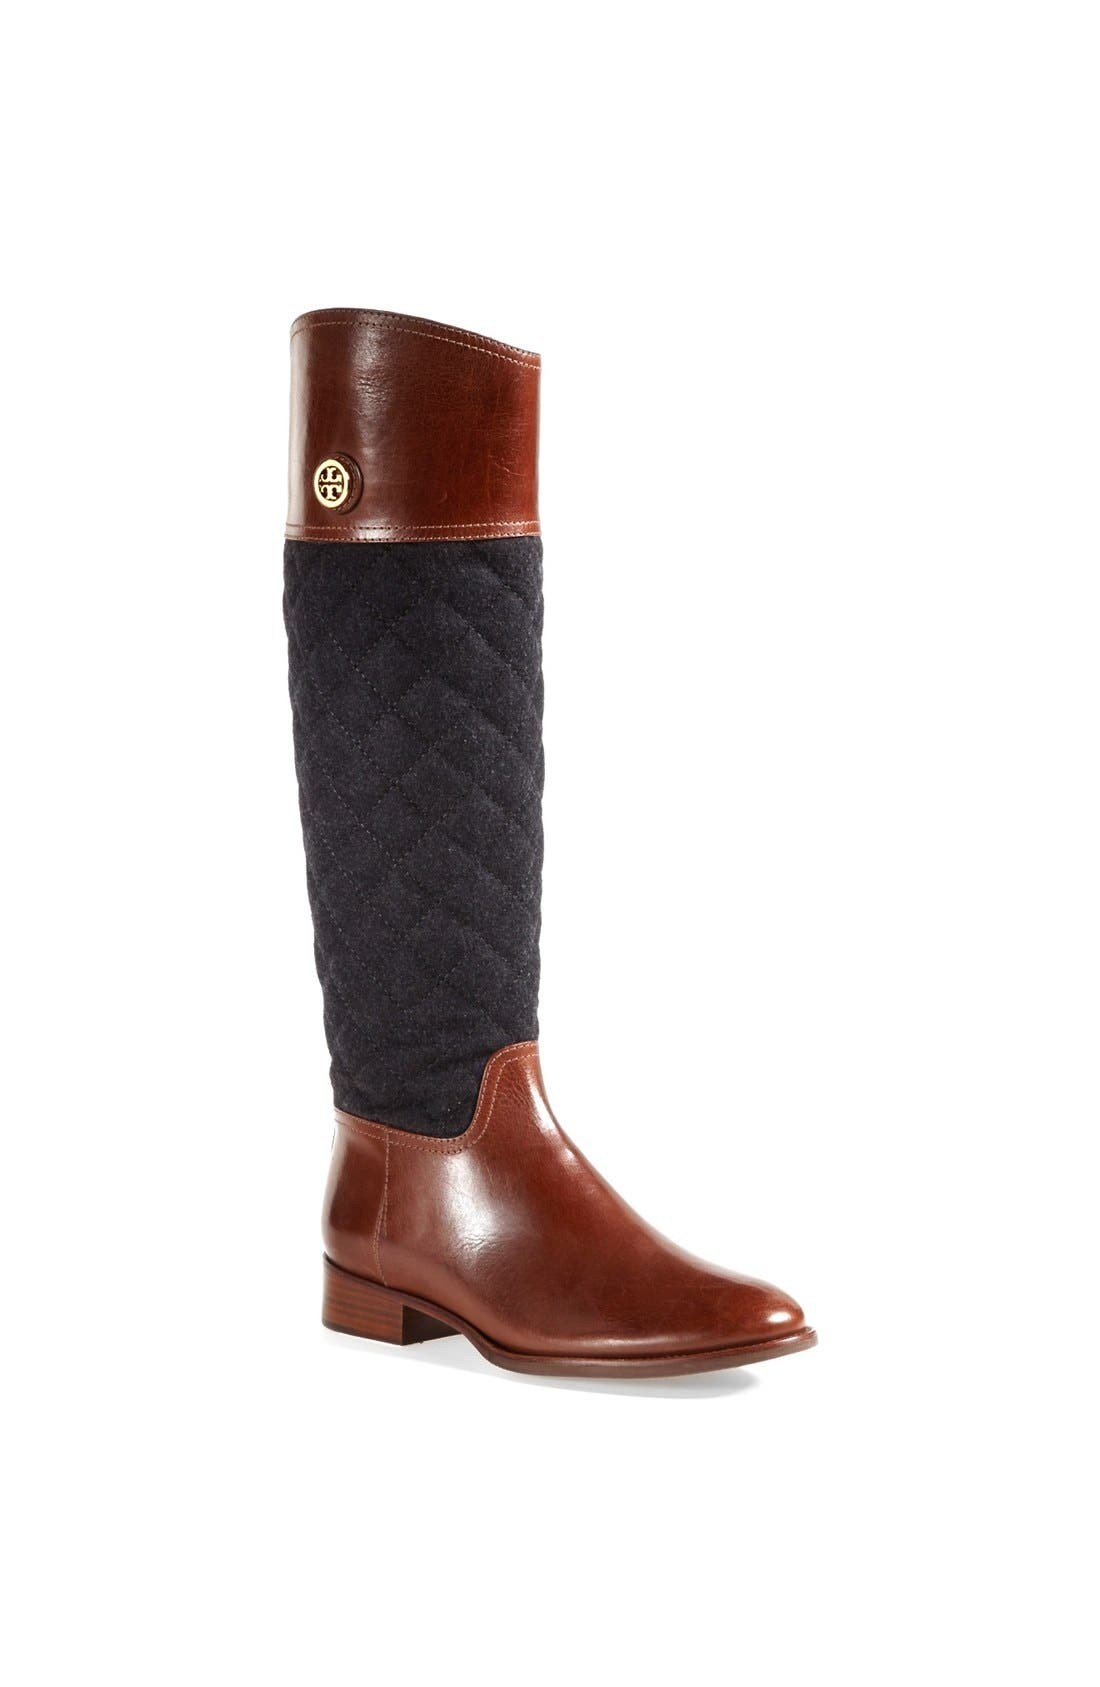 Alternate Image 1 Selected - Tory Burch 'Rosalie' Riding Boot